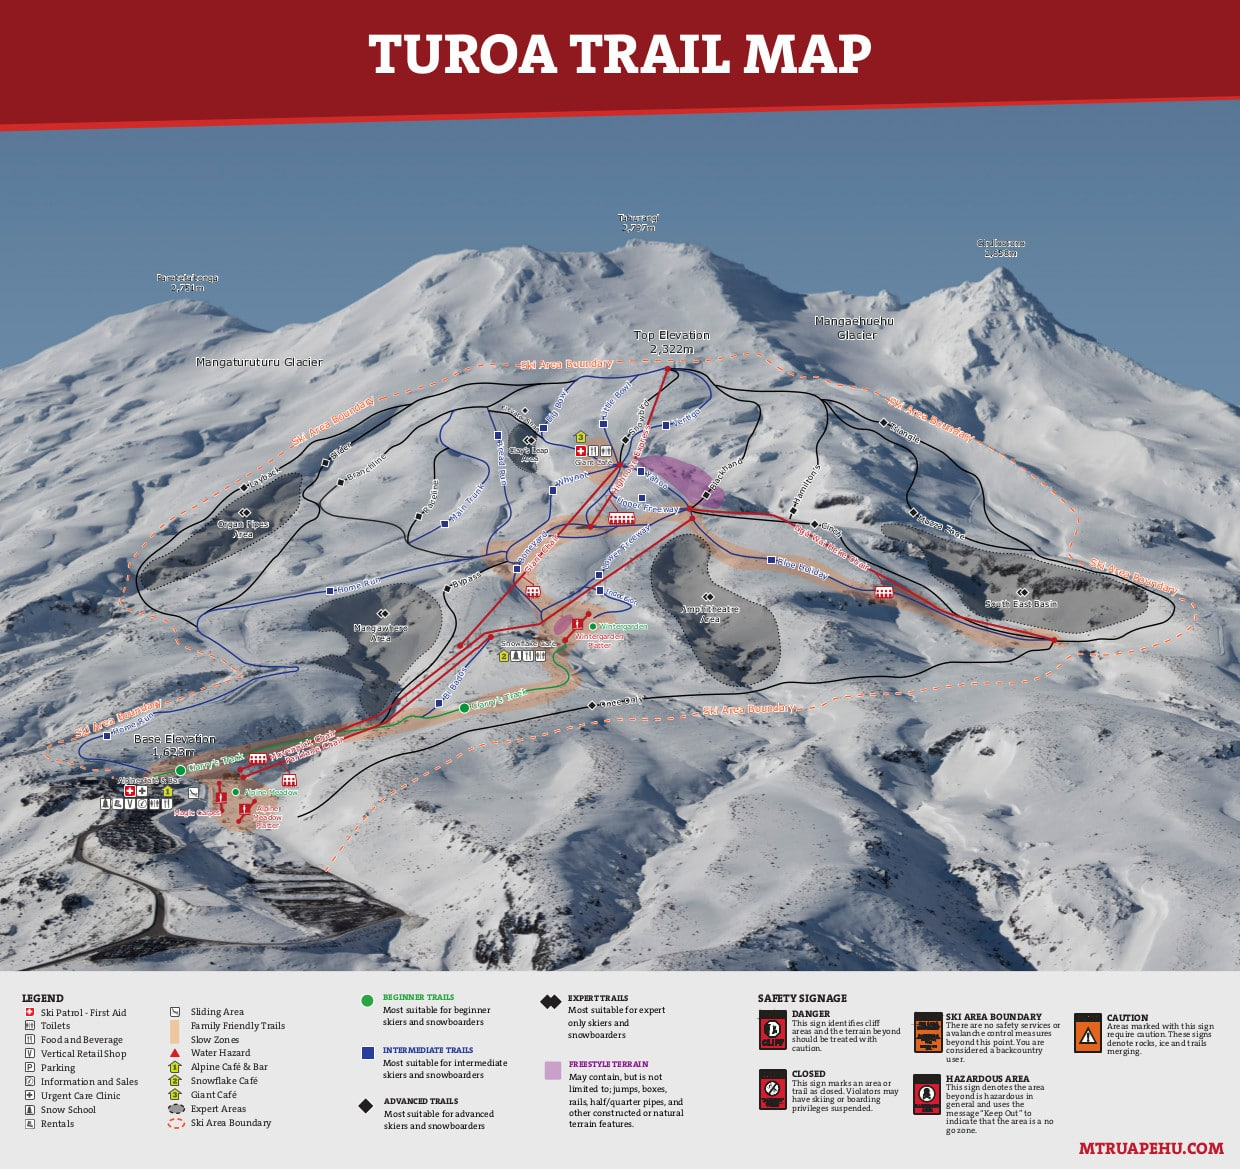 Turoa Piste / Trail Map